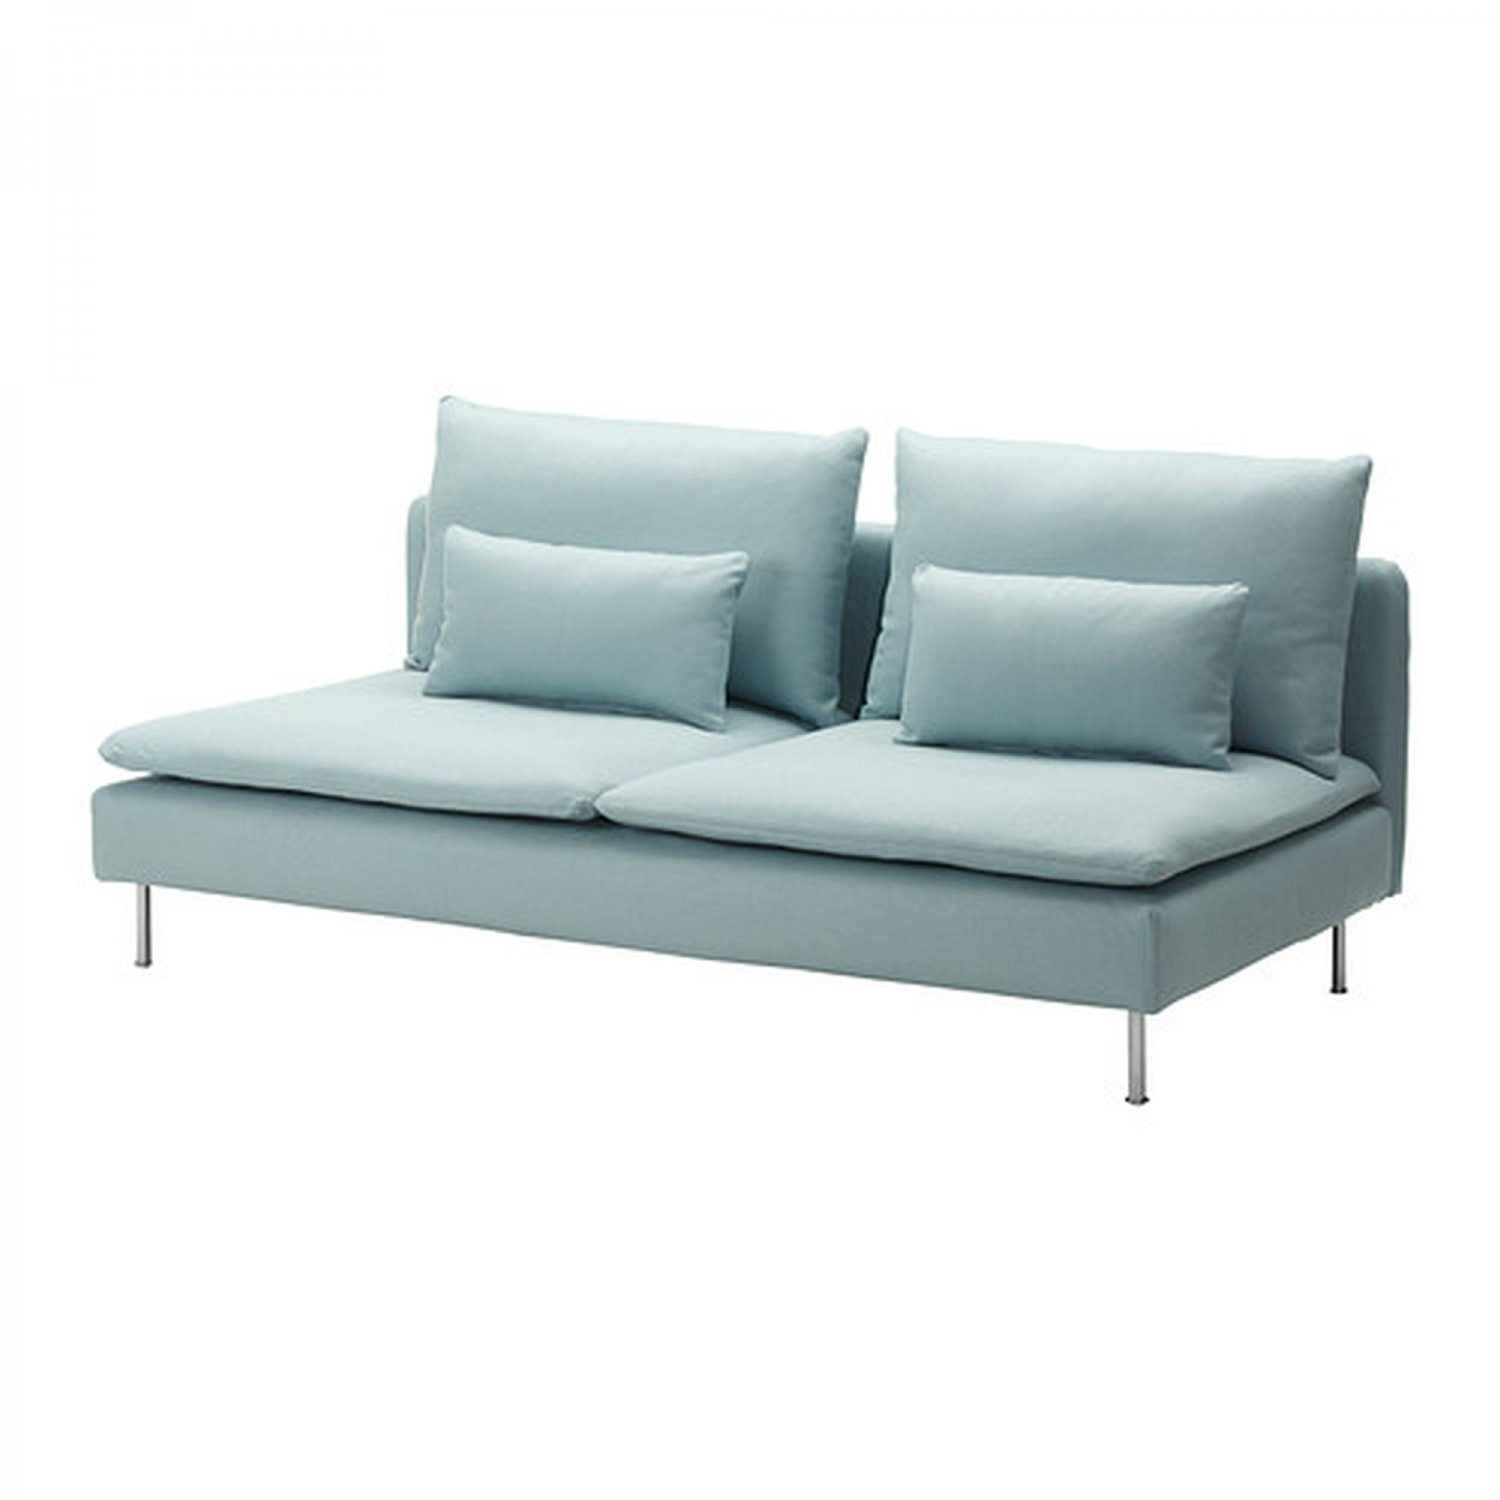 backamo 3 seater sofa slipcover tufted with chaise ikea soderhamn seat cover isefall light